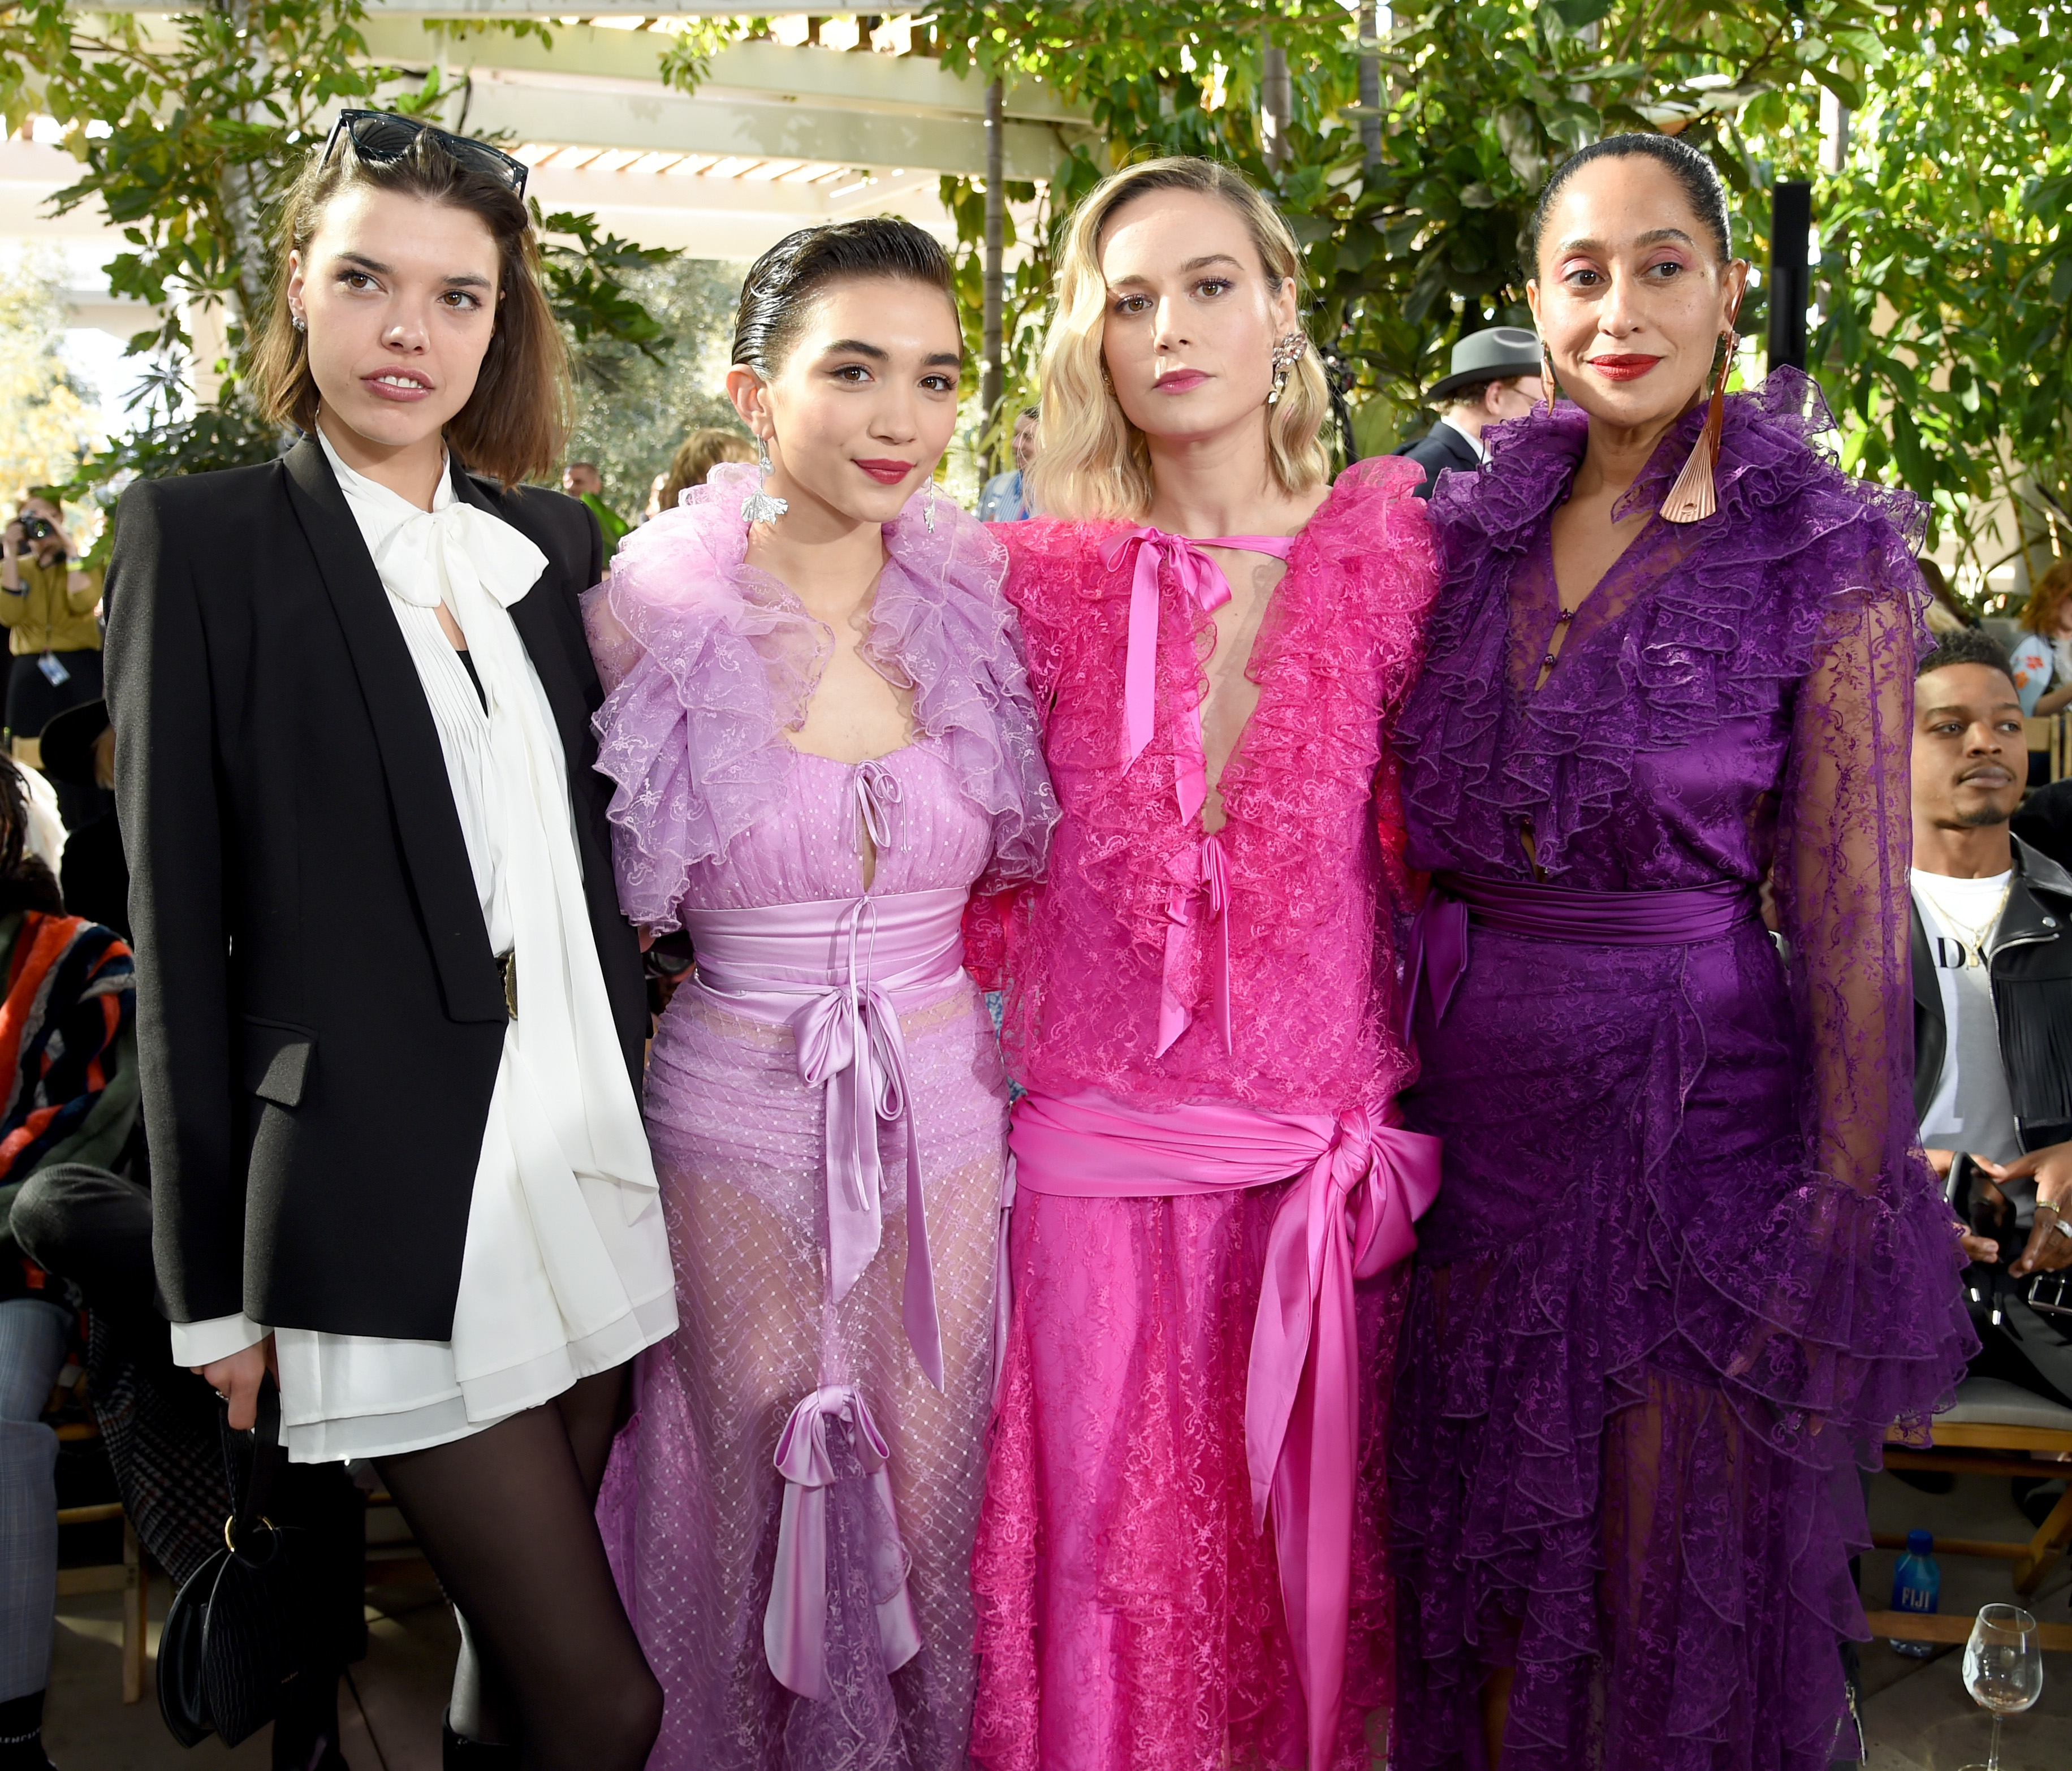 gettyimages 1094179482 Tracee Ellis Ross, Brie Larson and Rowan Blanchard Were Squad Goals at the Rodarte Show